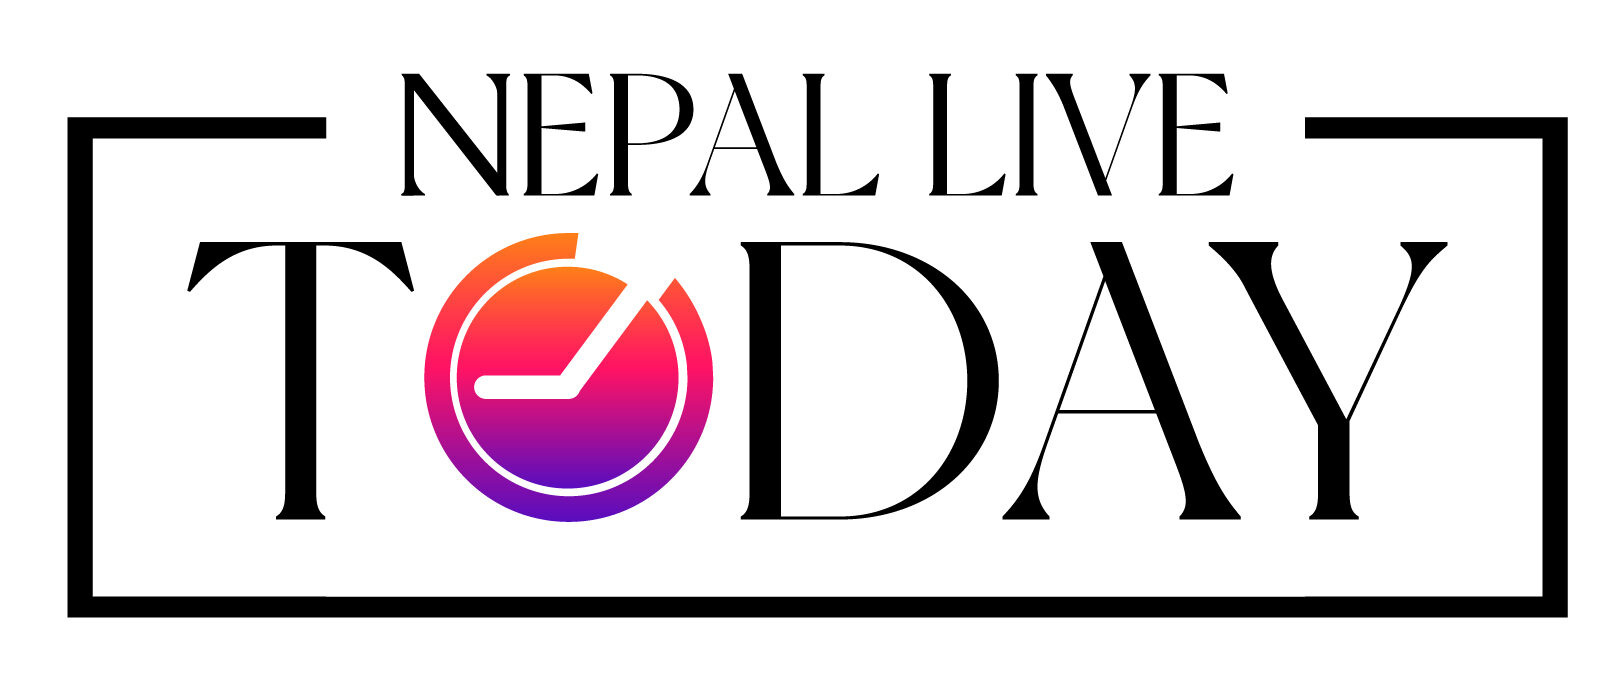 Nepal Live Today